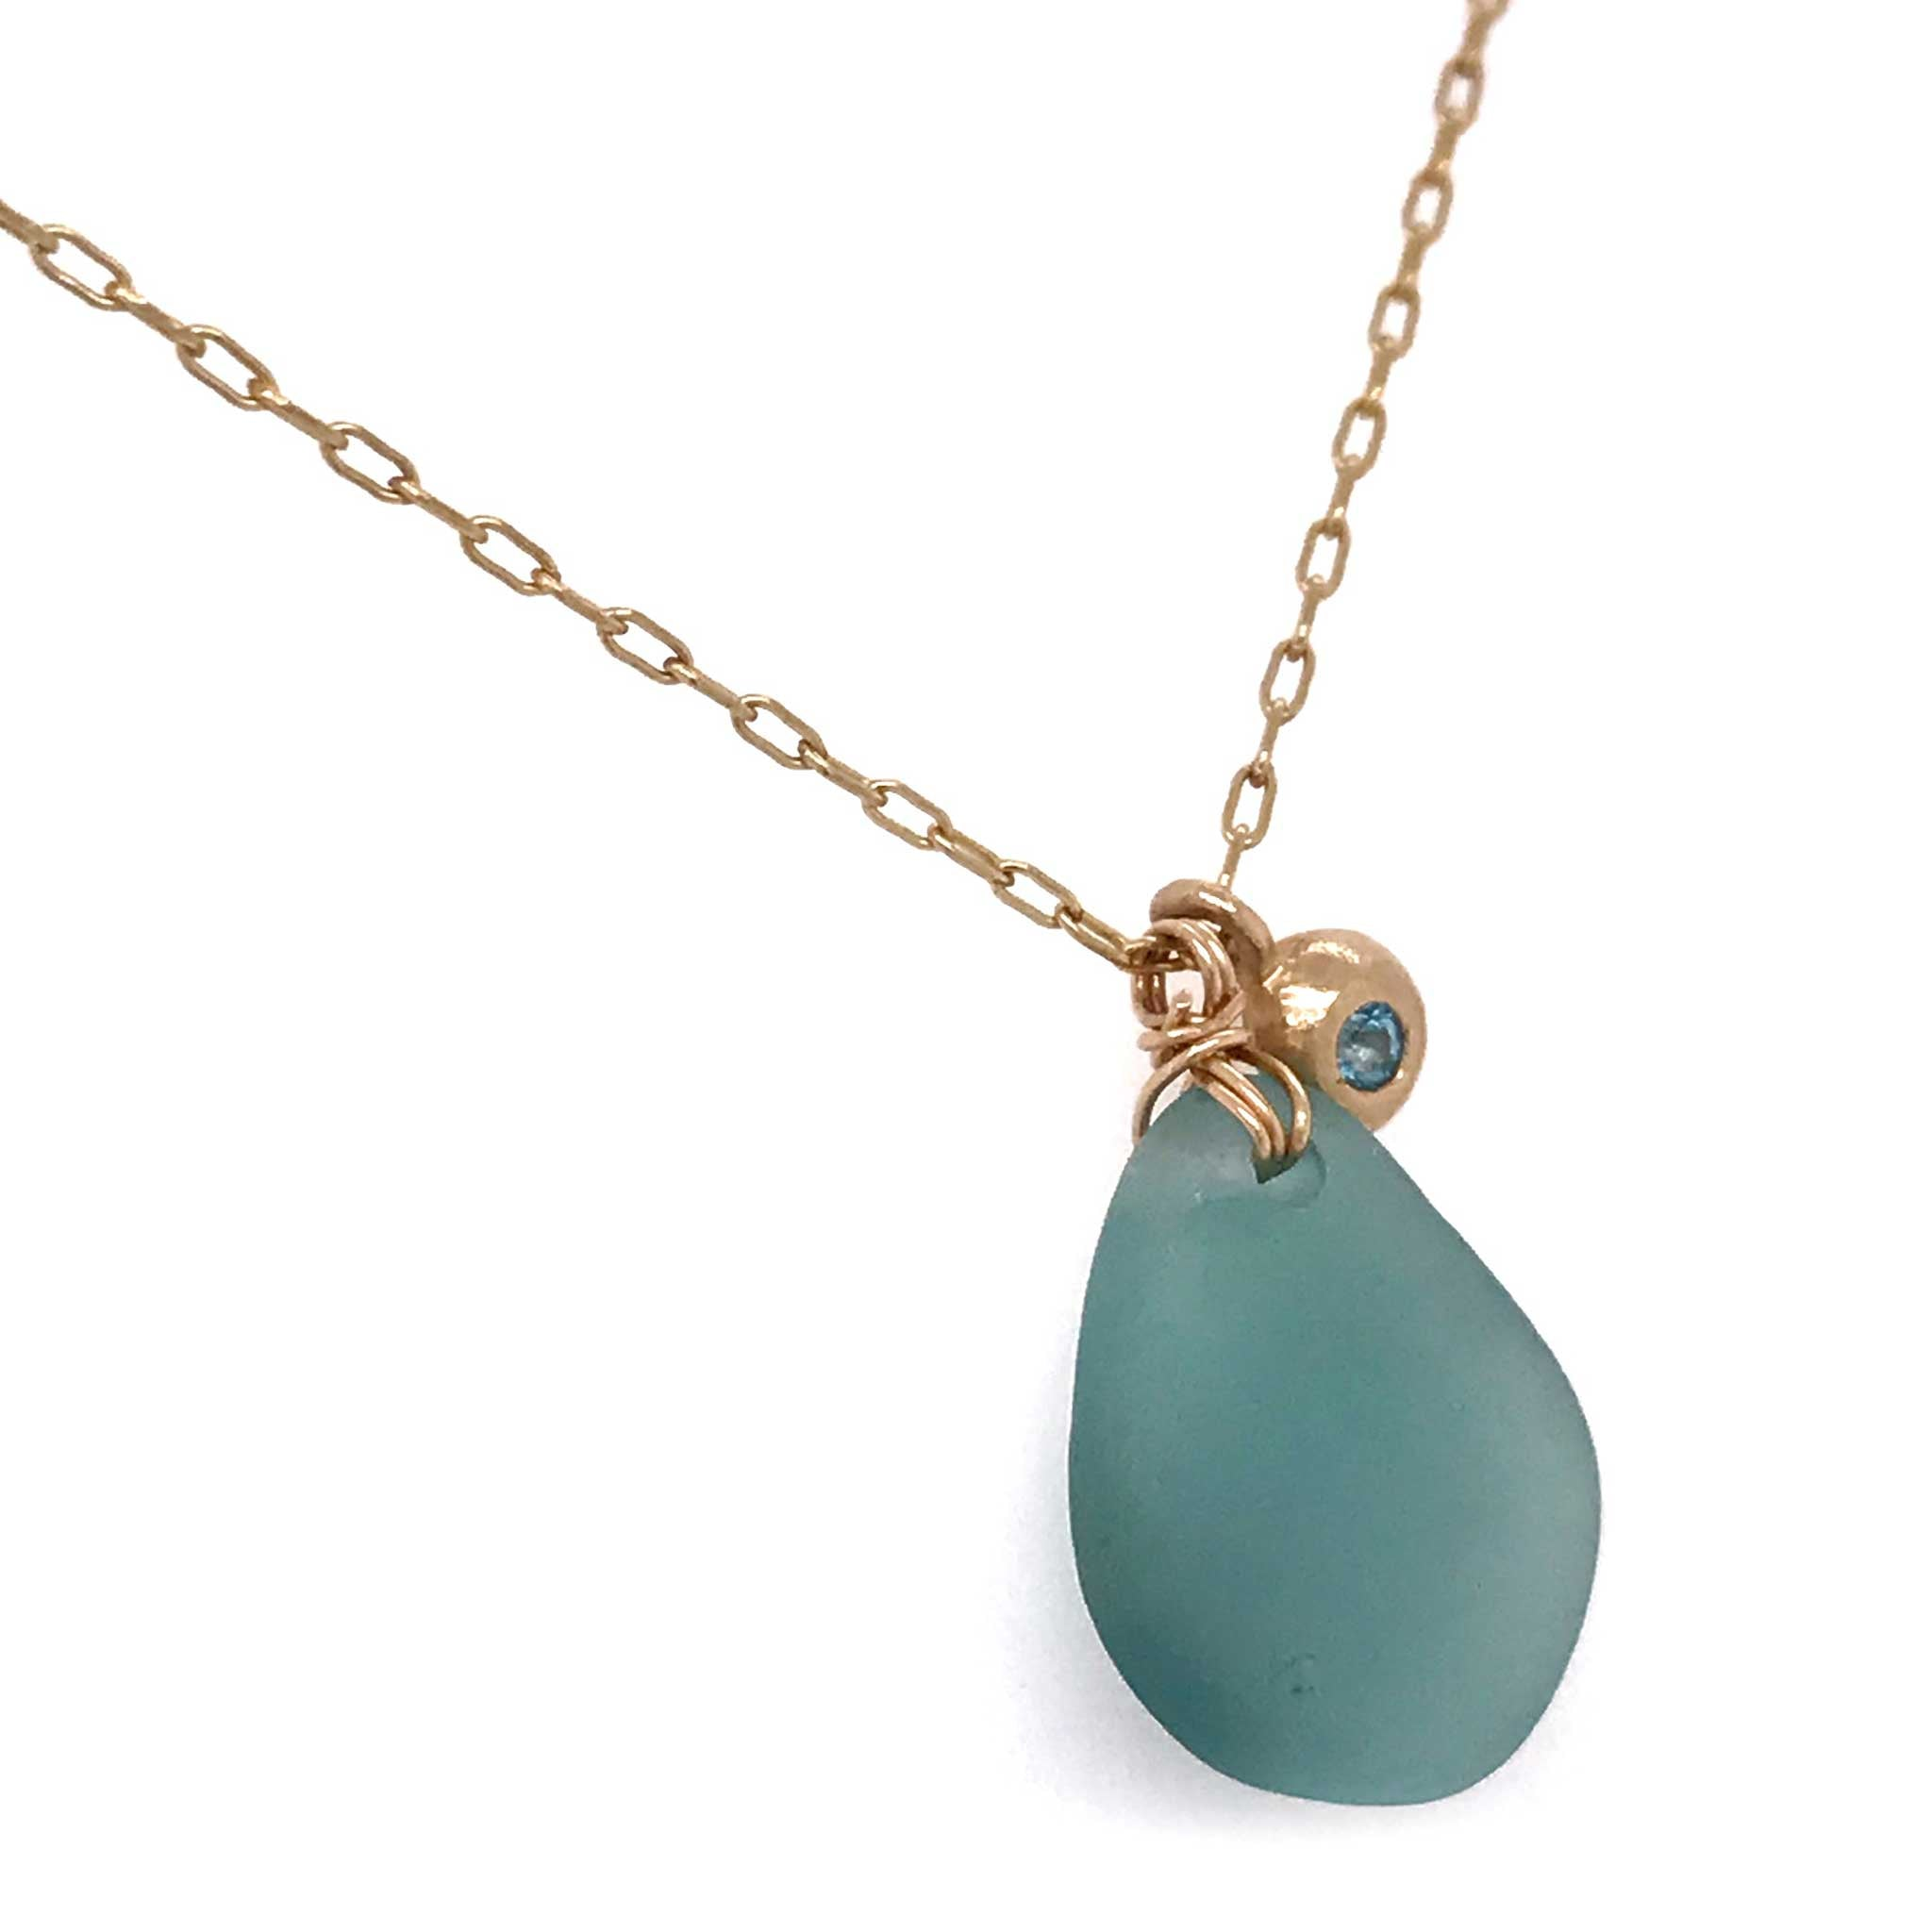 aqua seaglass necklace with gold charm and london blue topaz kriket broadhurst jewellery near me